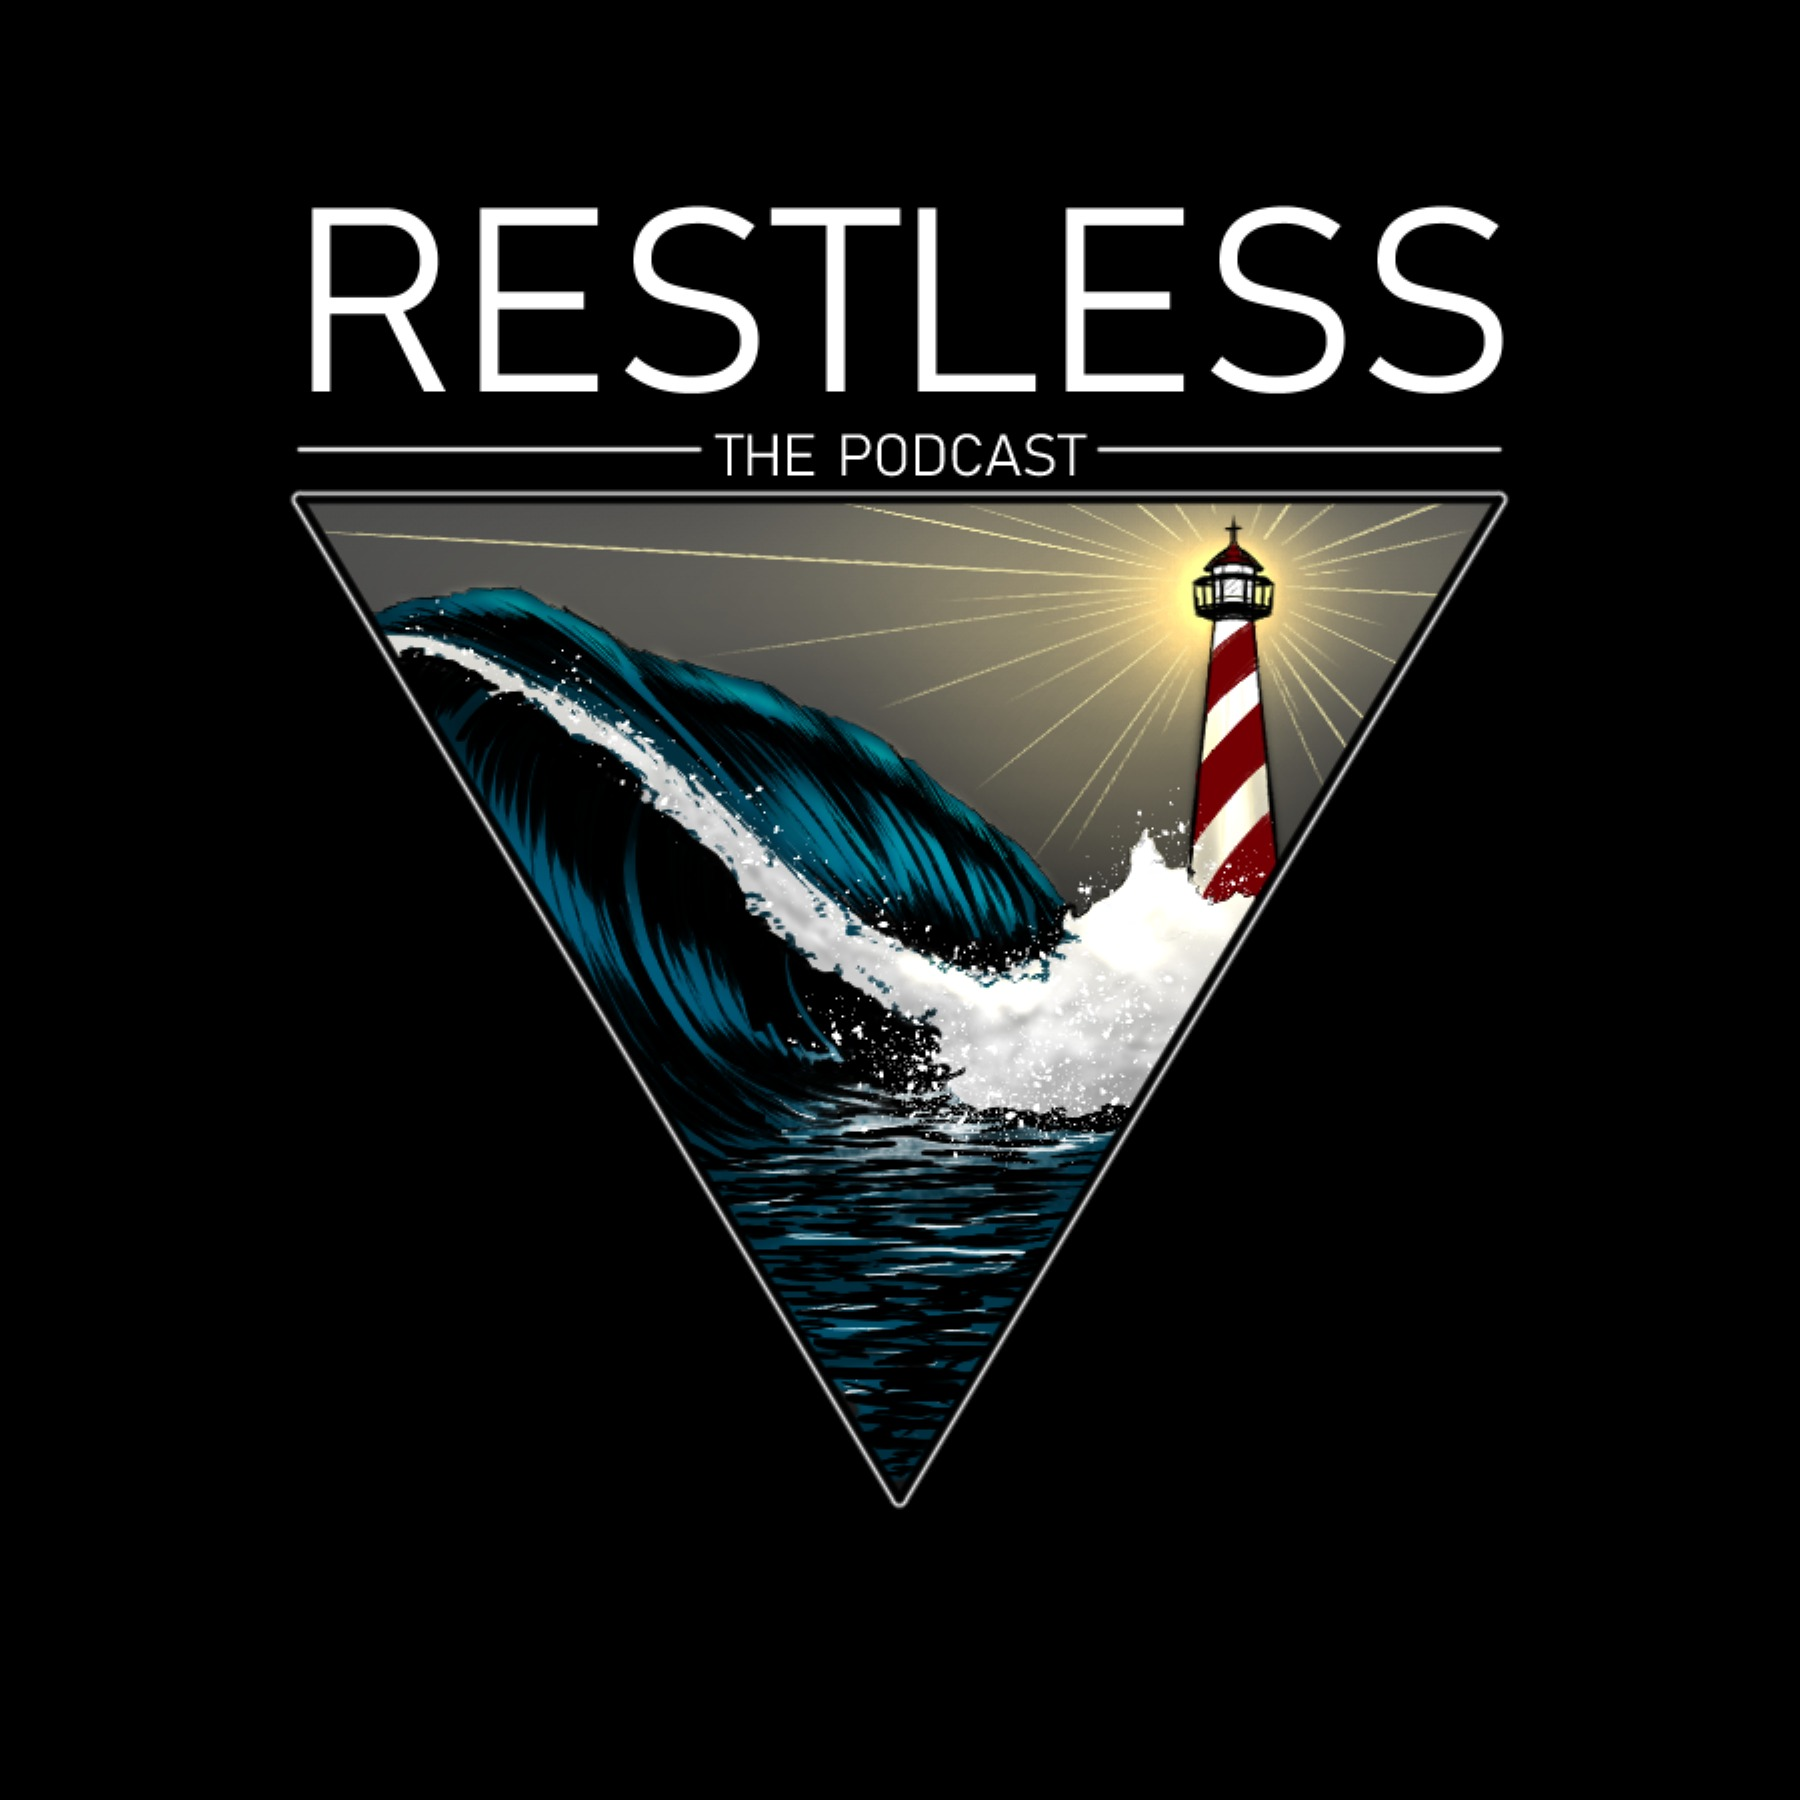 Restless The Podcast